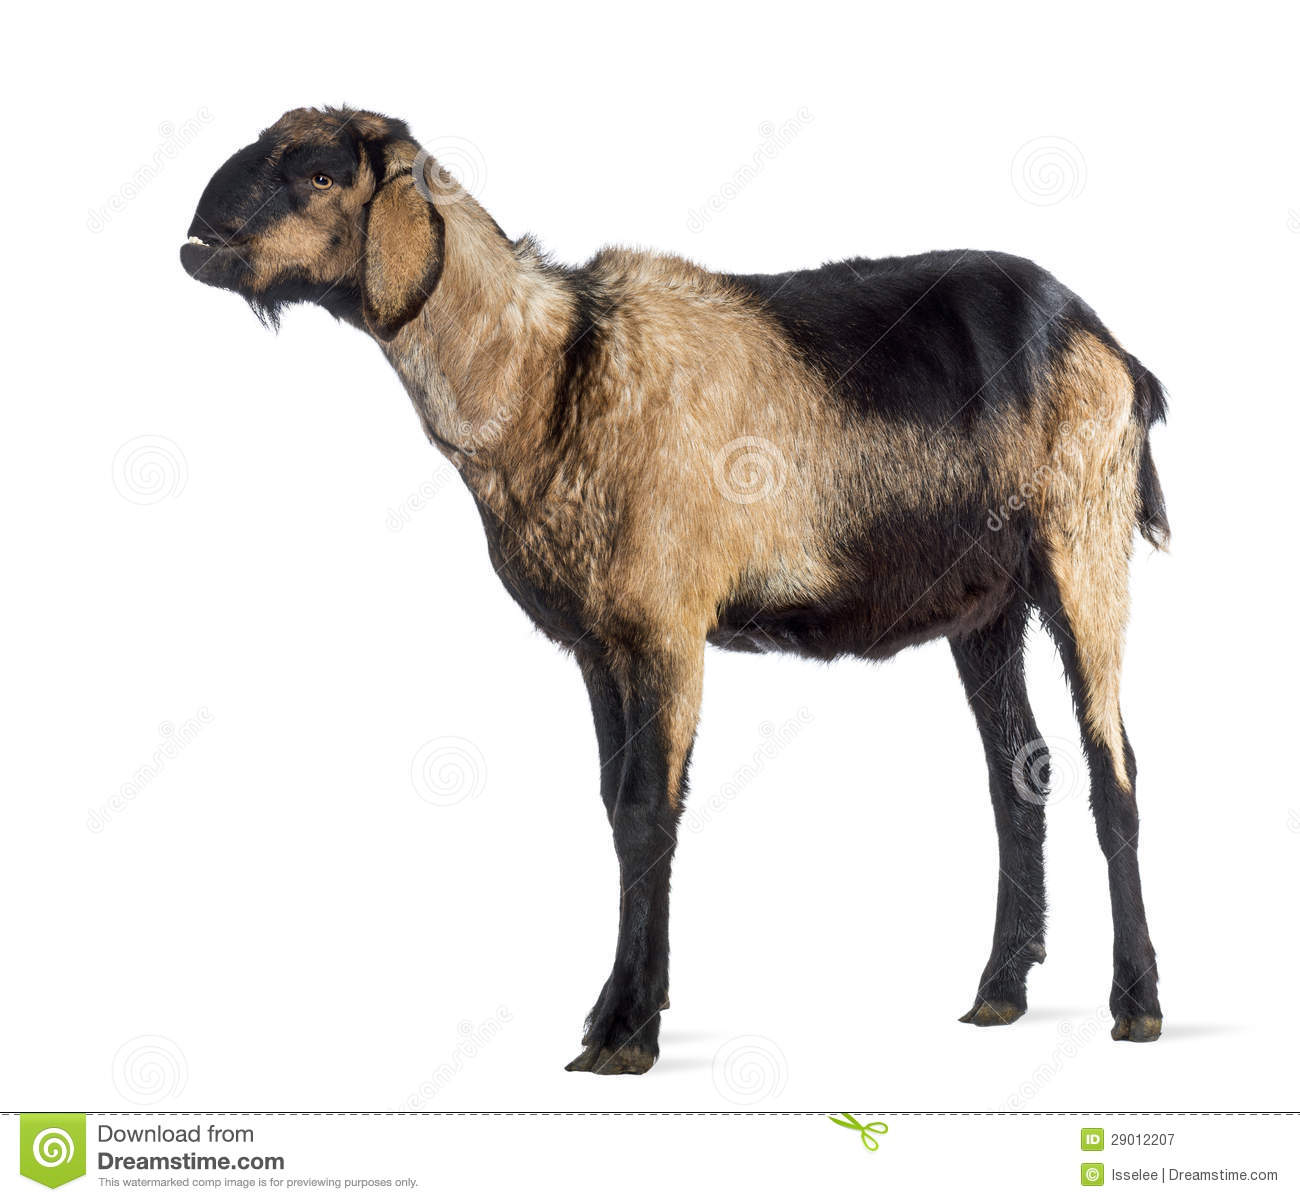 Anglo-Nubian goat with a distorted jaw, looking up